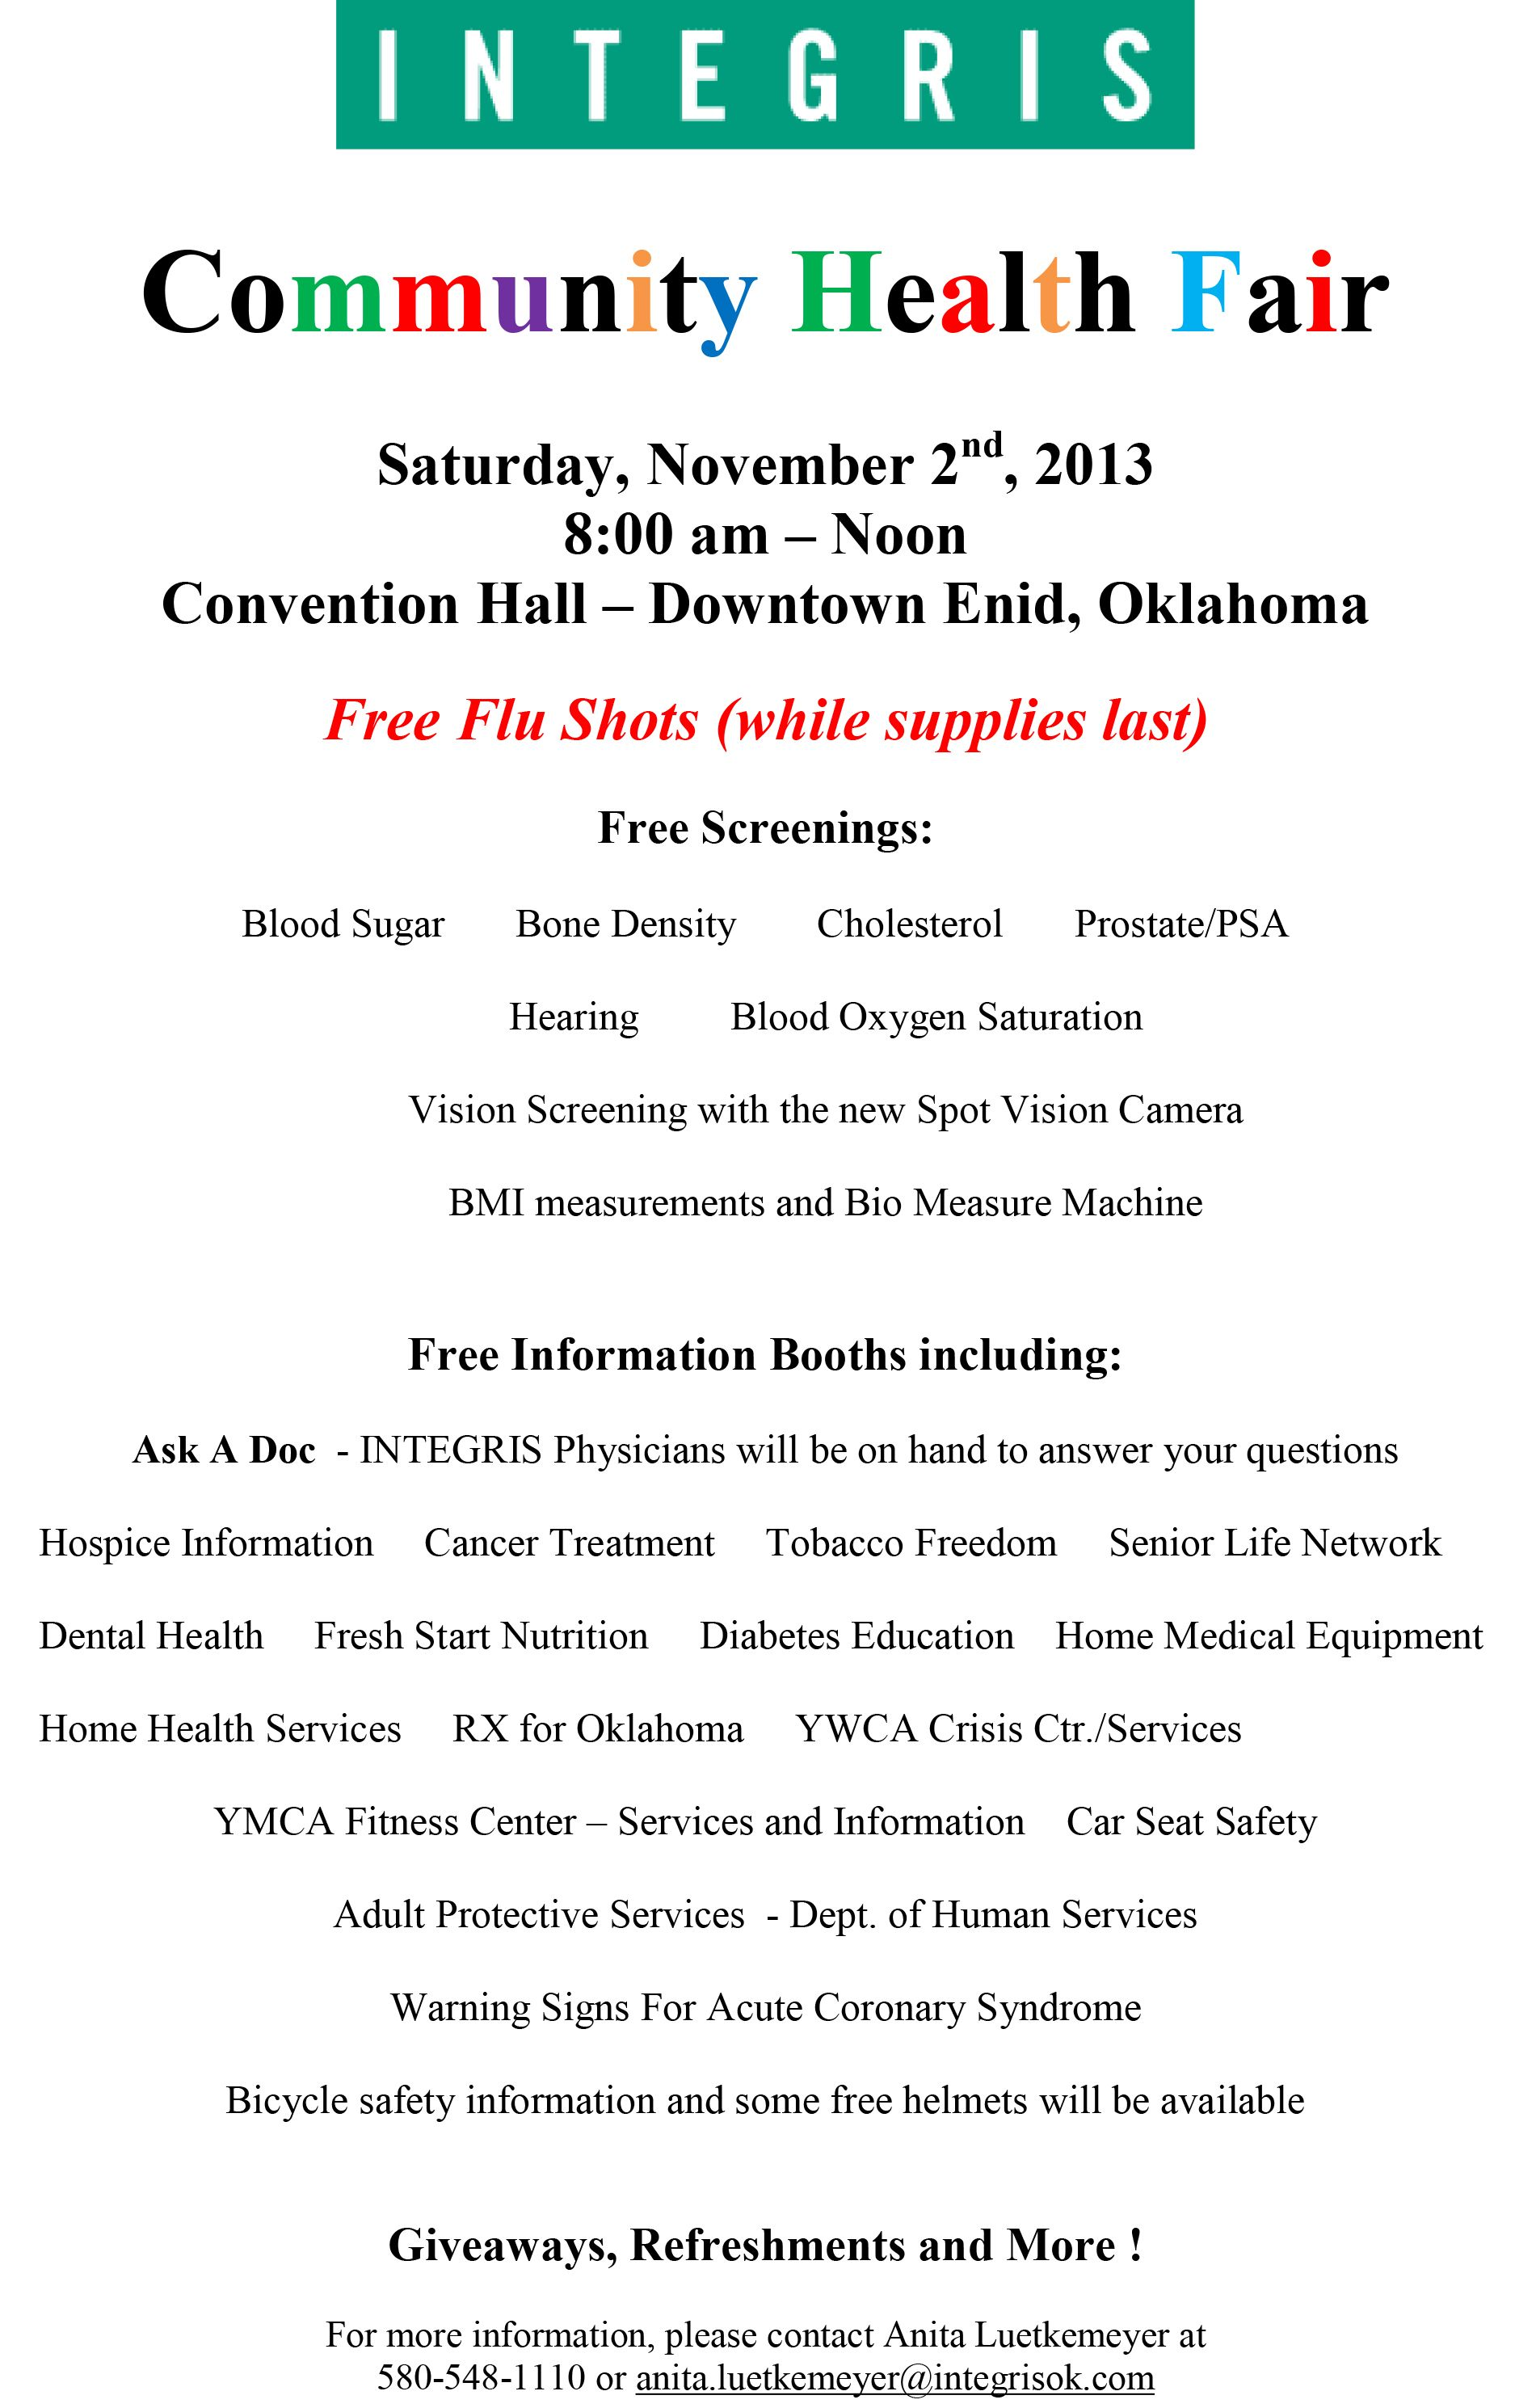 Community Health Fair In Enid, Oklahoma Health fair